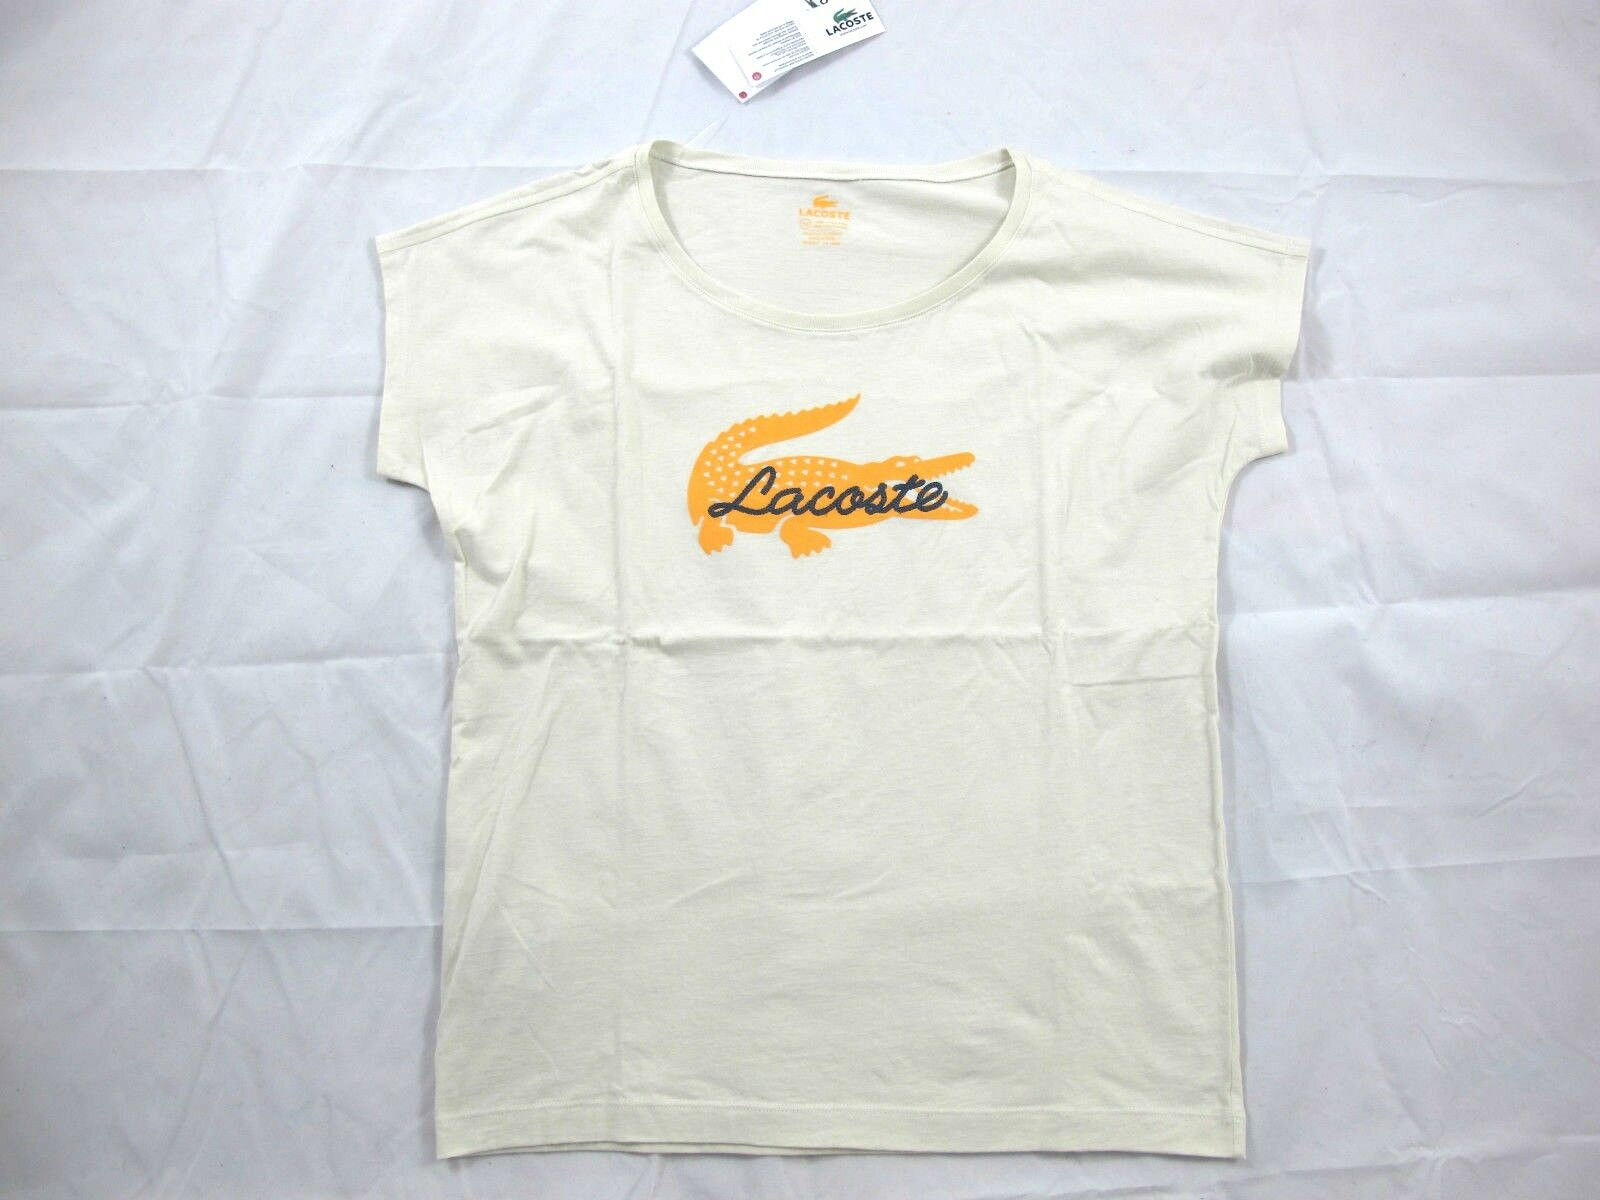 Lacoste Solid Beige Cotton Graphic Short Sleeve T-Shirt S M L TF2101  BNWT